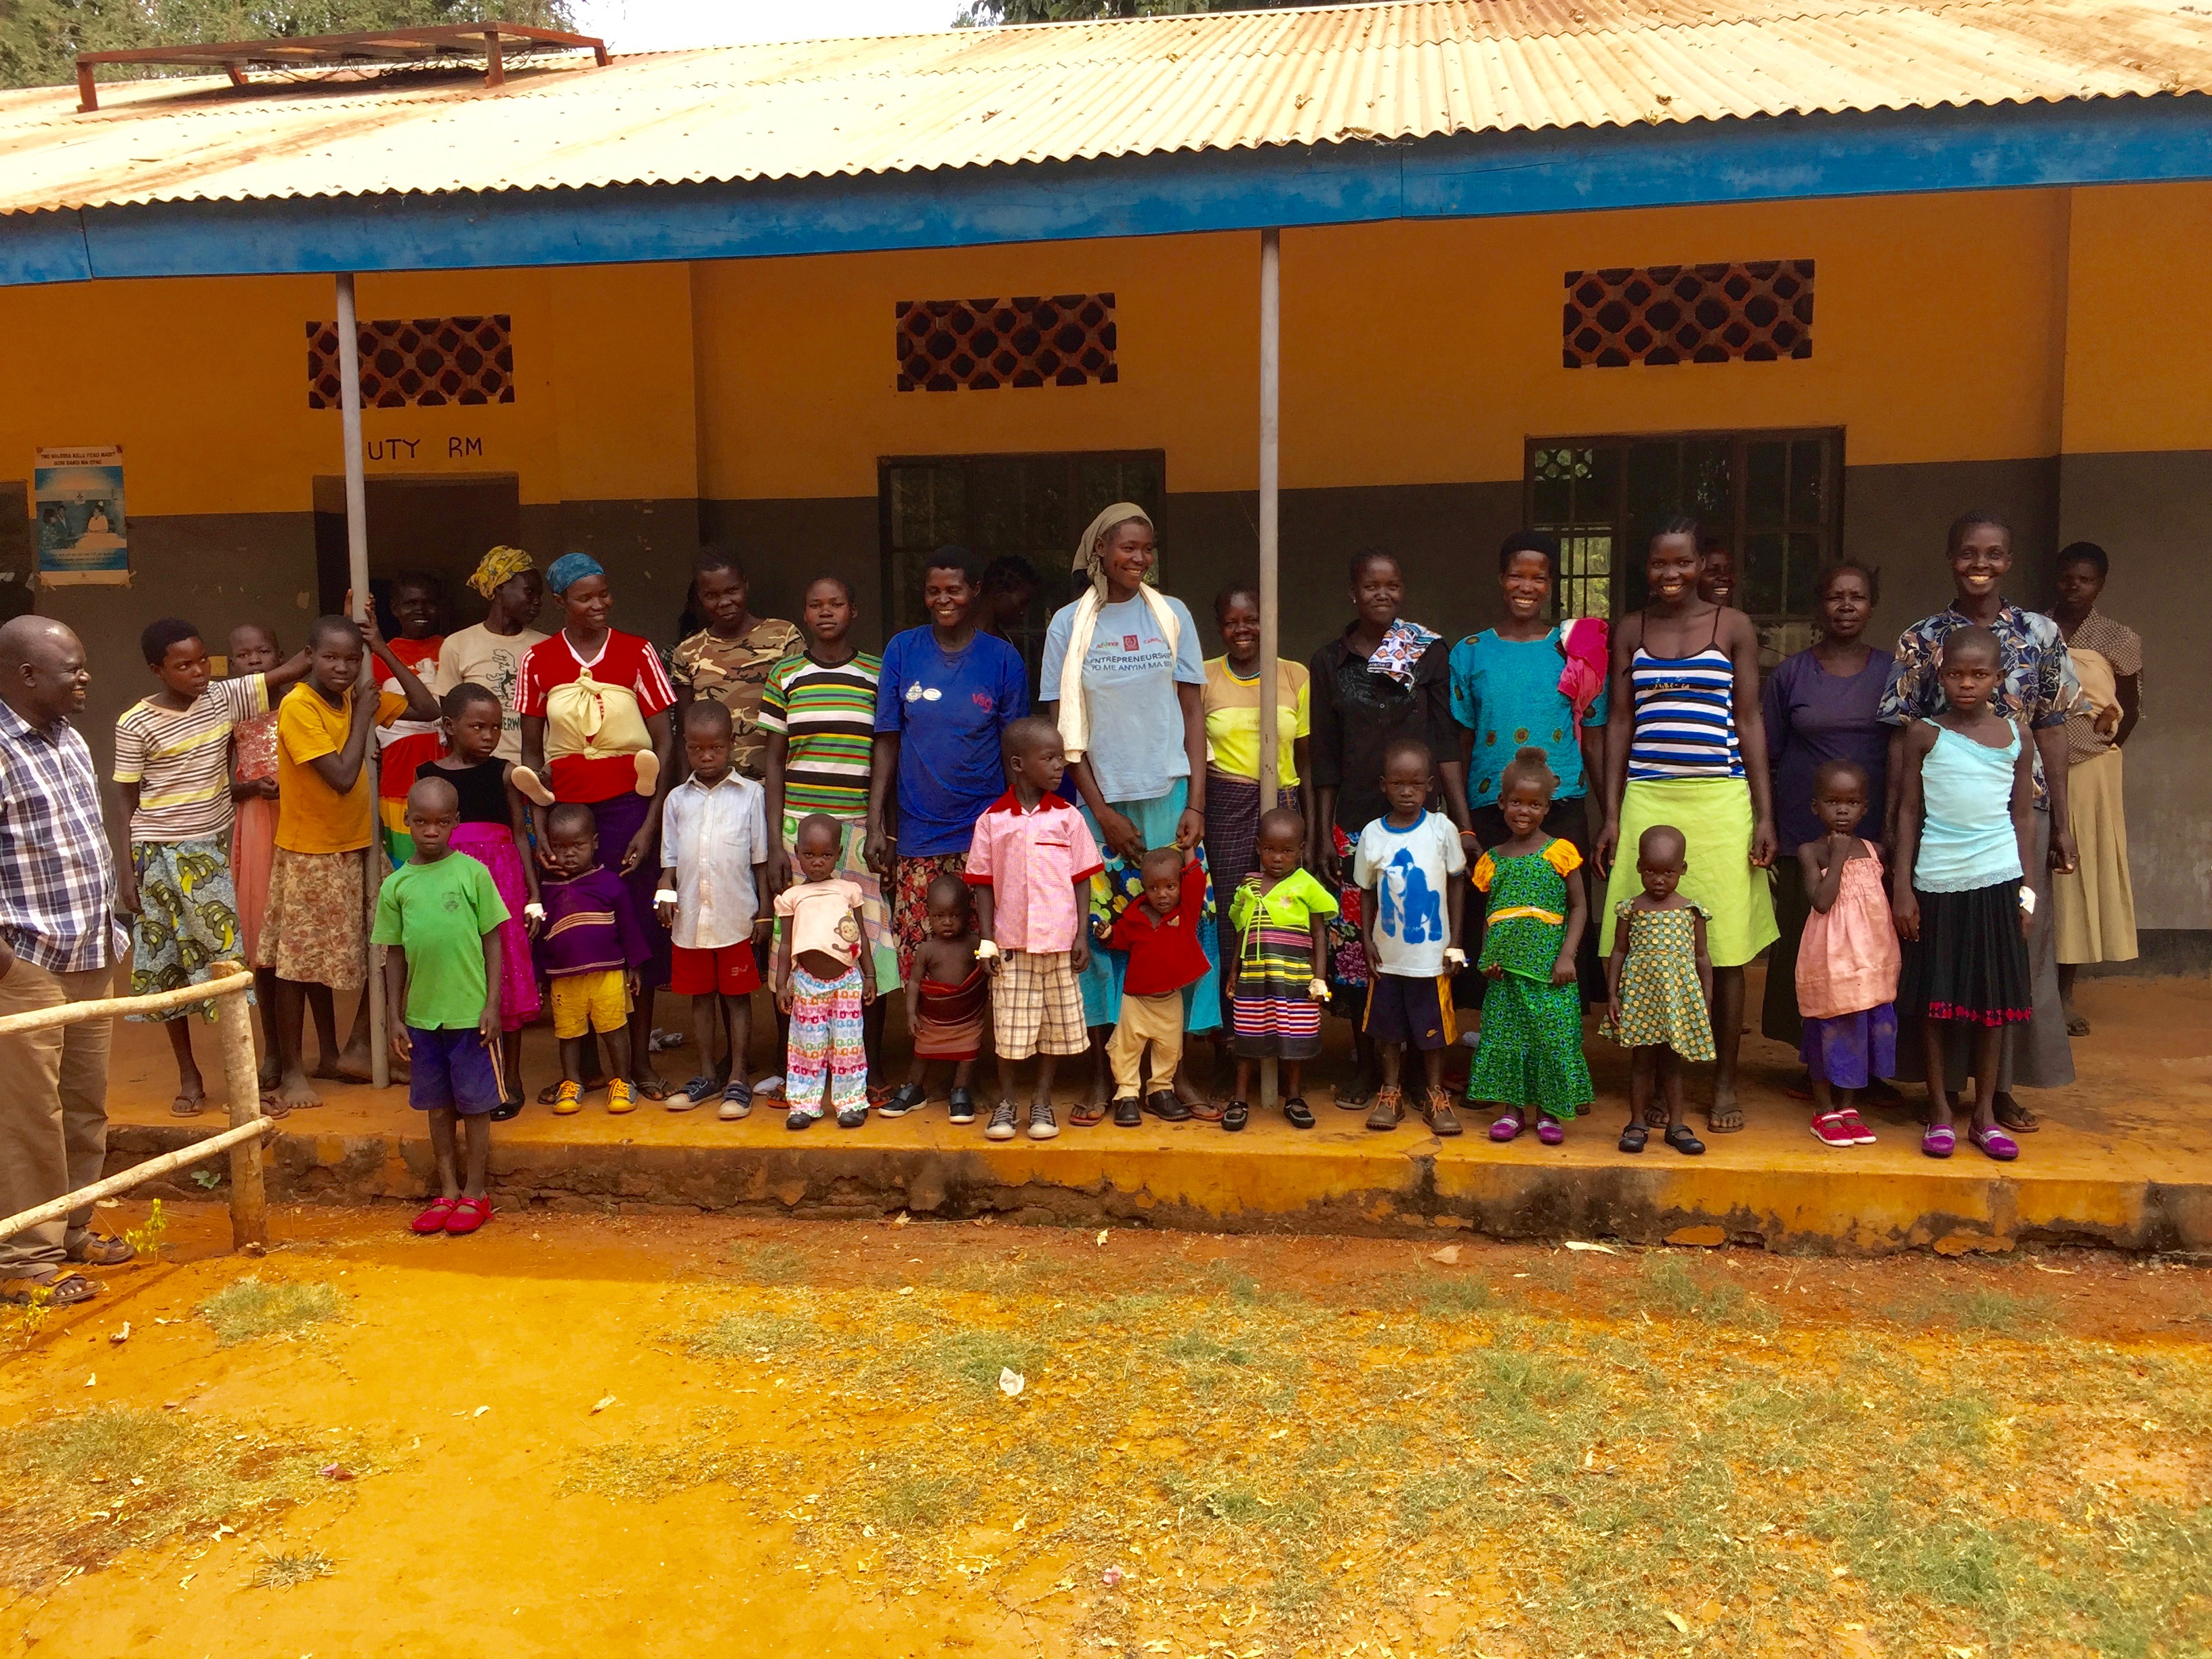 Some of the mothers and children line up for a photo with their new Umi shoes.